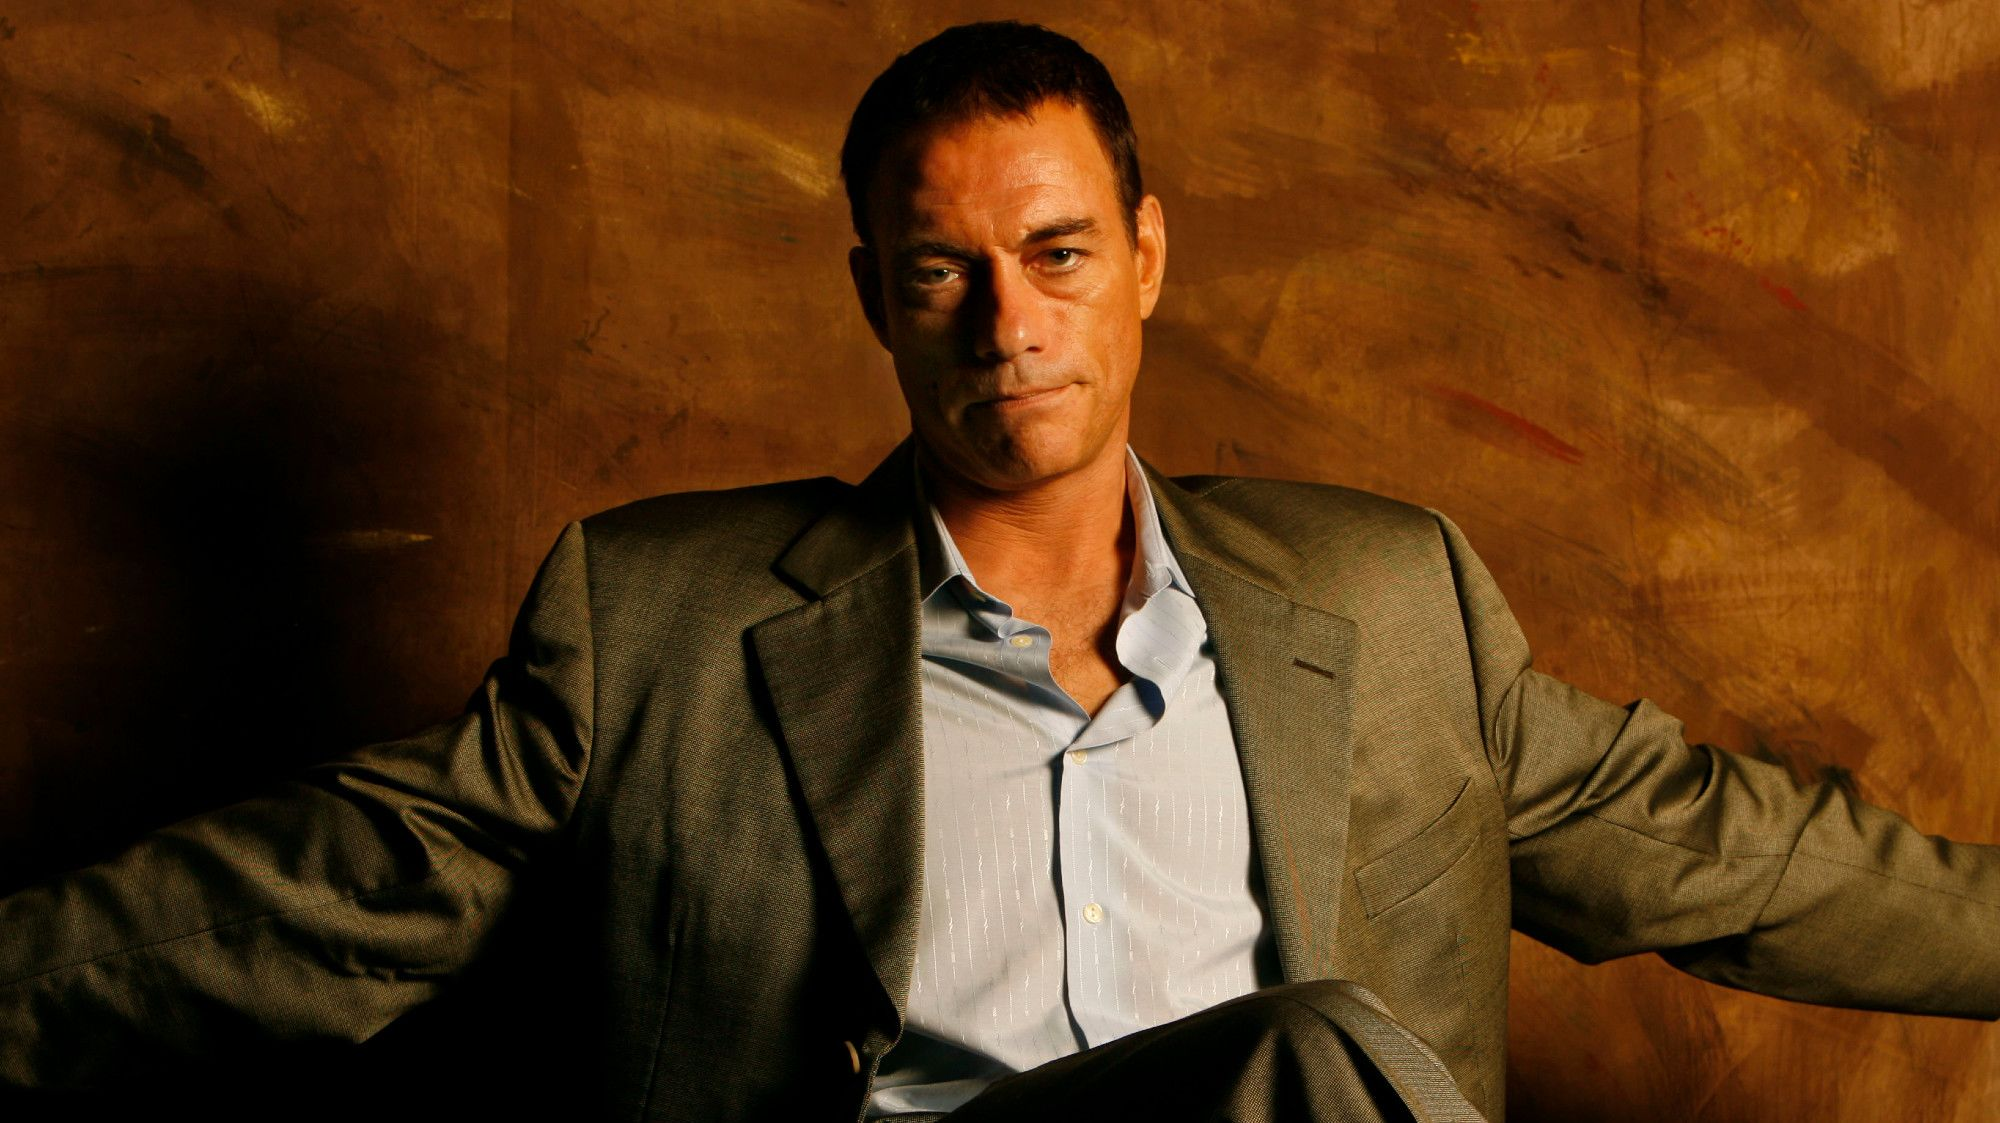 Facts About Jean-Claude Van Damme